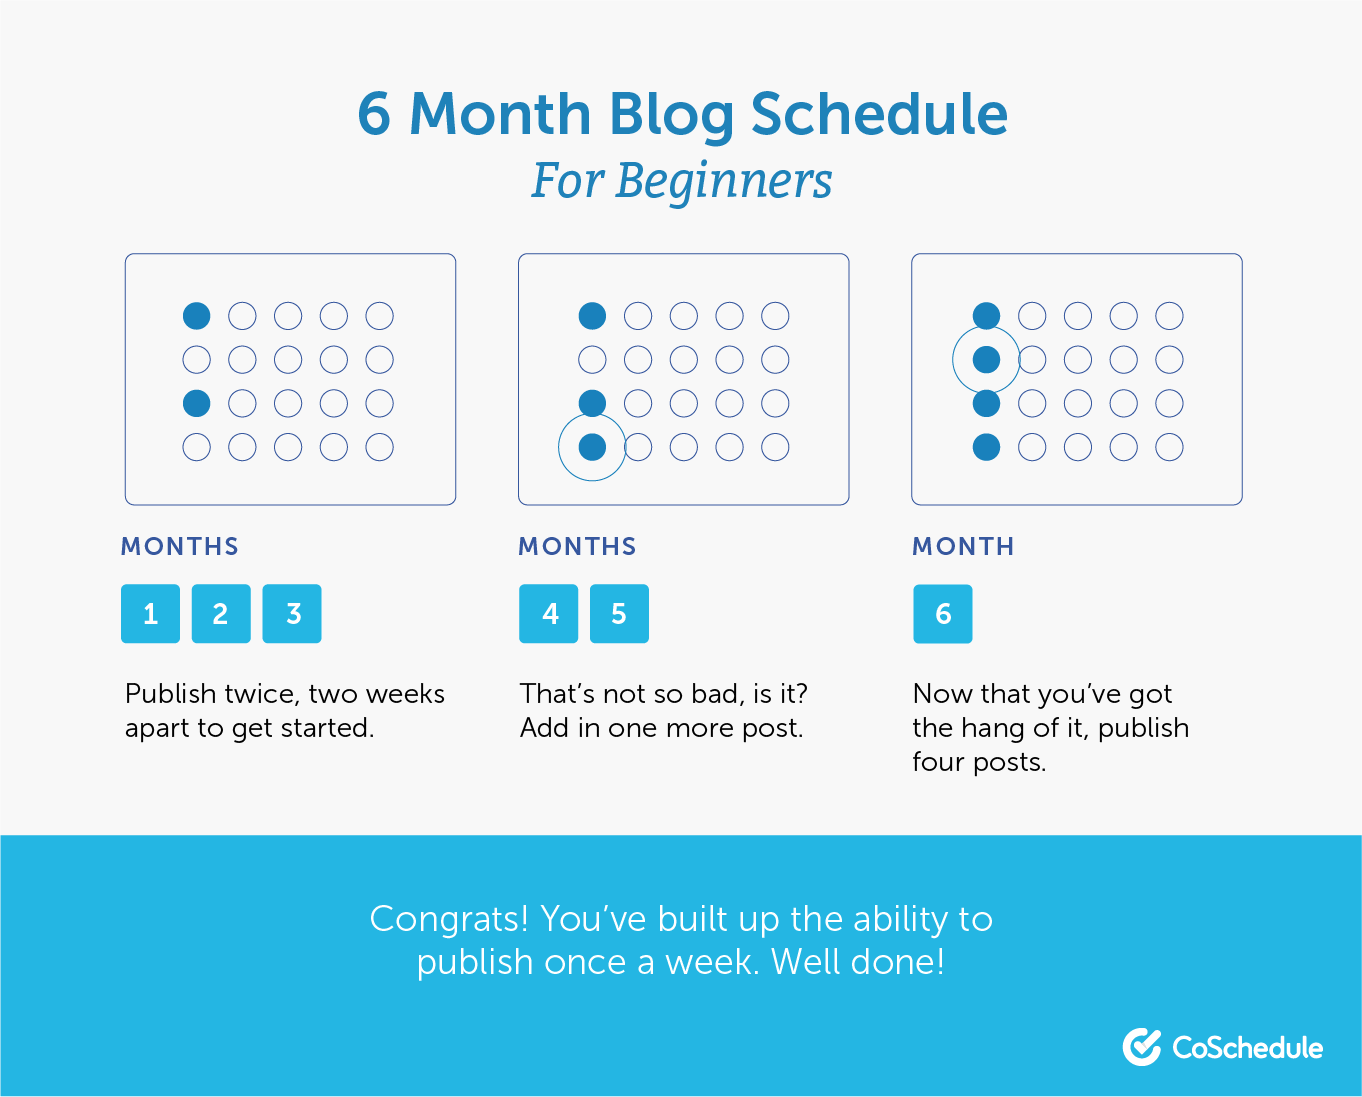 6 month blog schedule